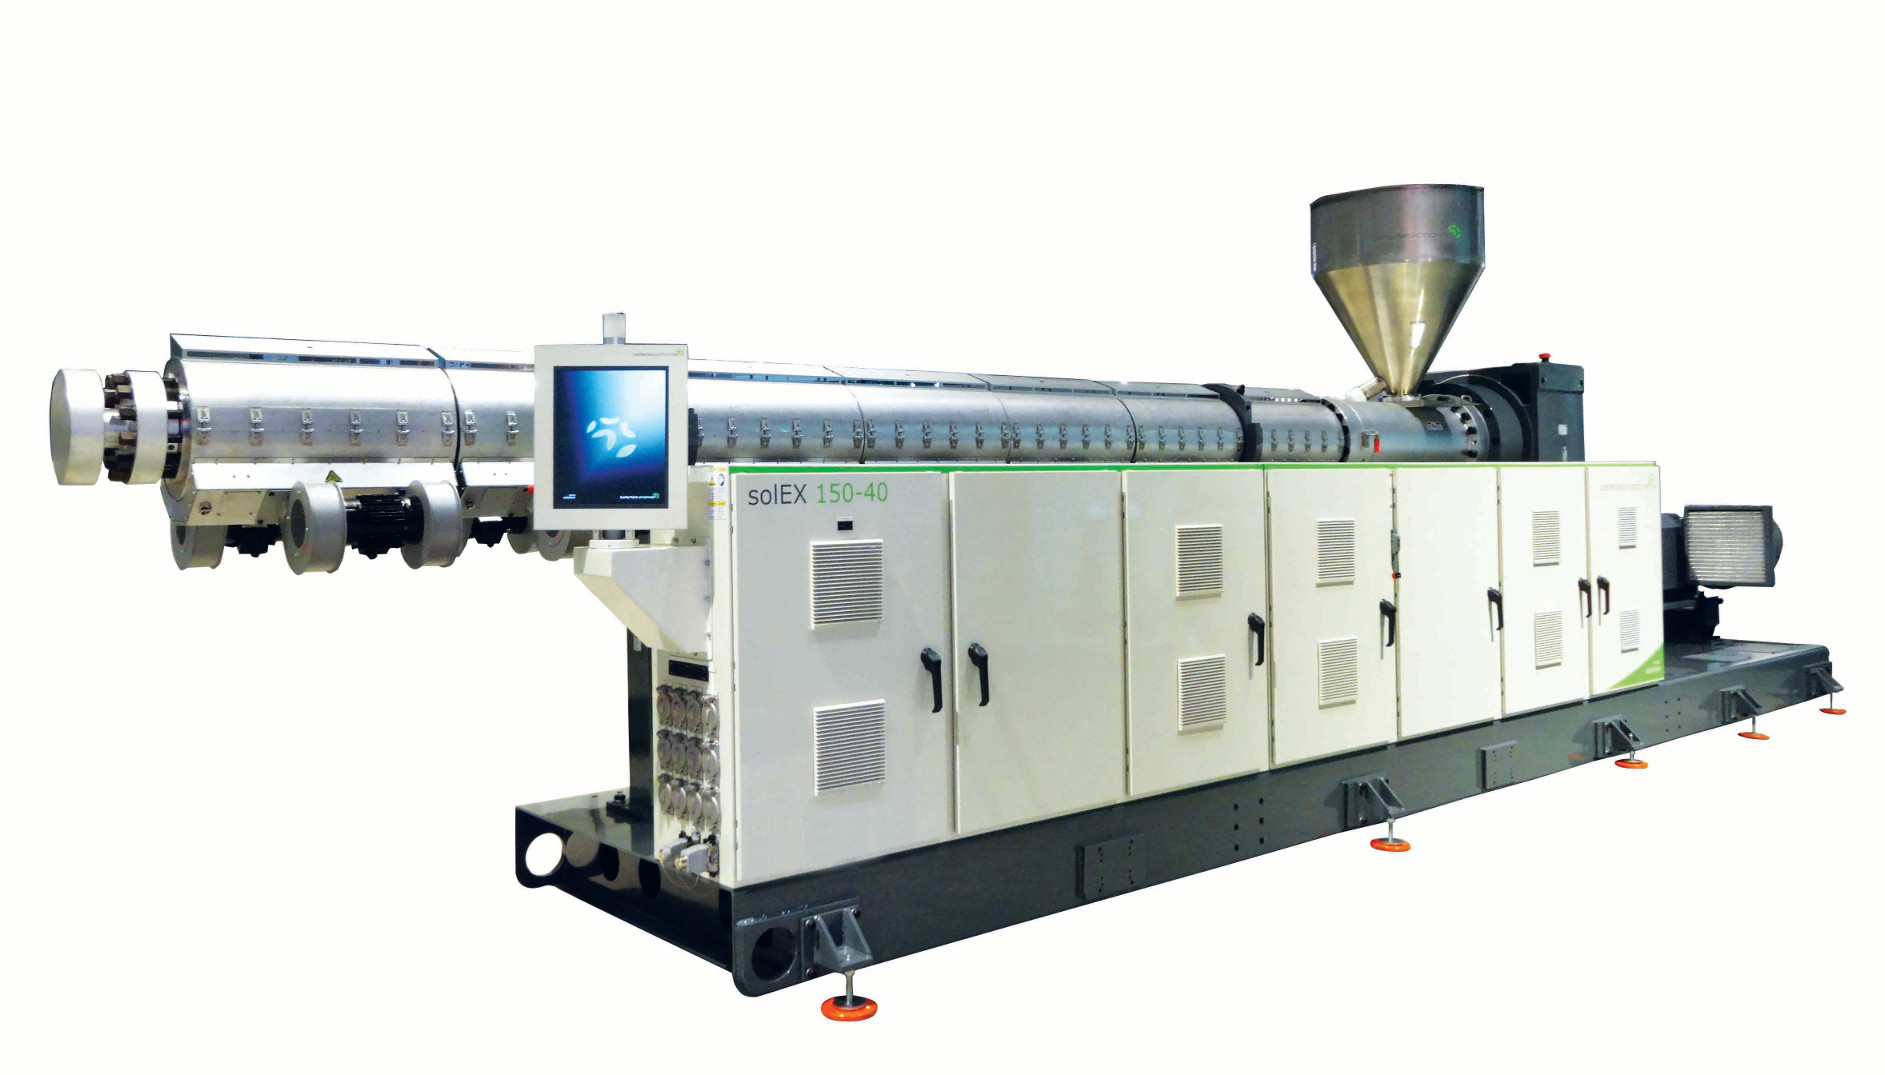 The powerful solEX 150 is the newest addition to the solEX single screw extruder series and particularly suited for large diameter pipe extrusion with outputs of up to 2,750 kg/h photo: battenfeld-cincinnati